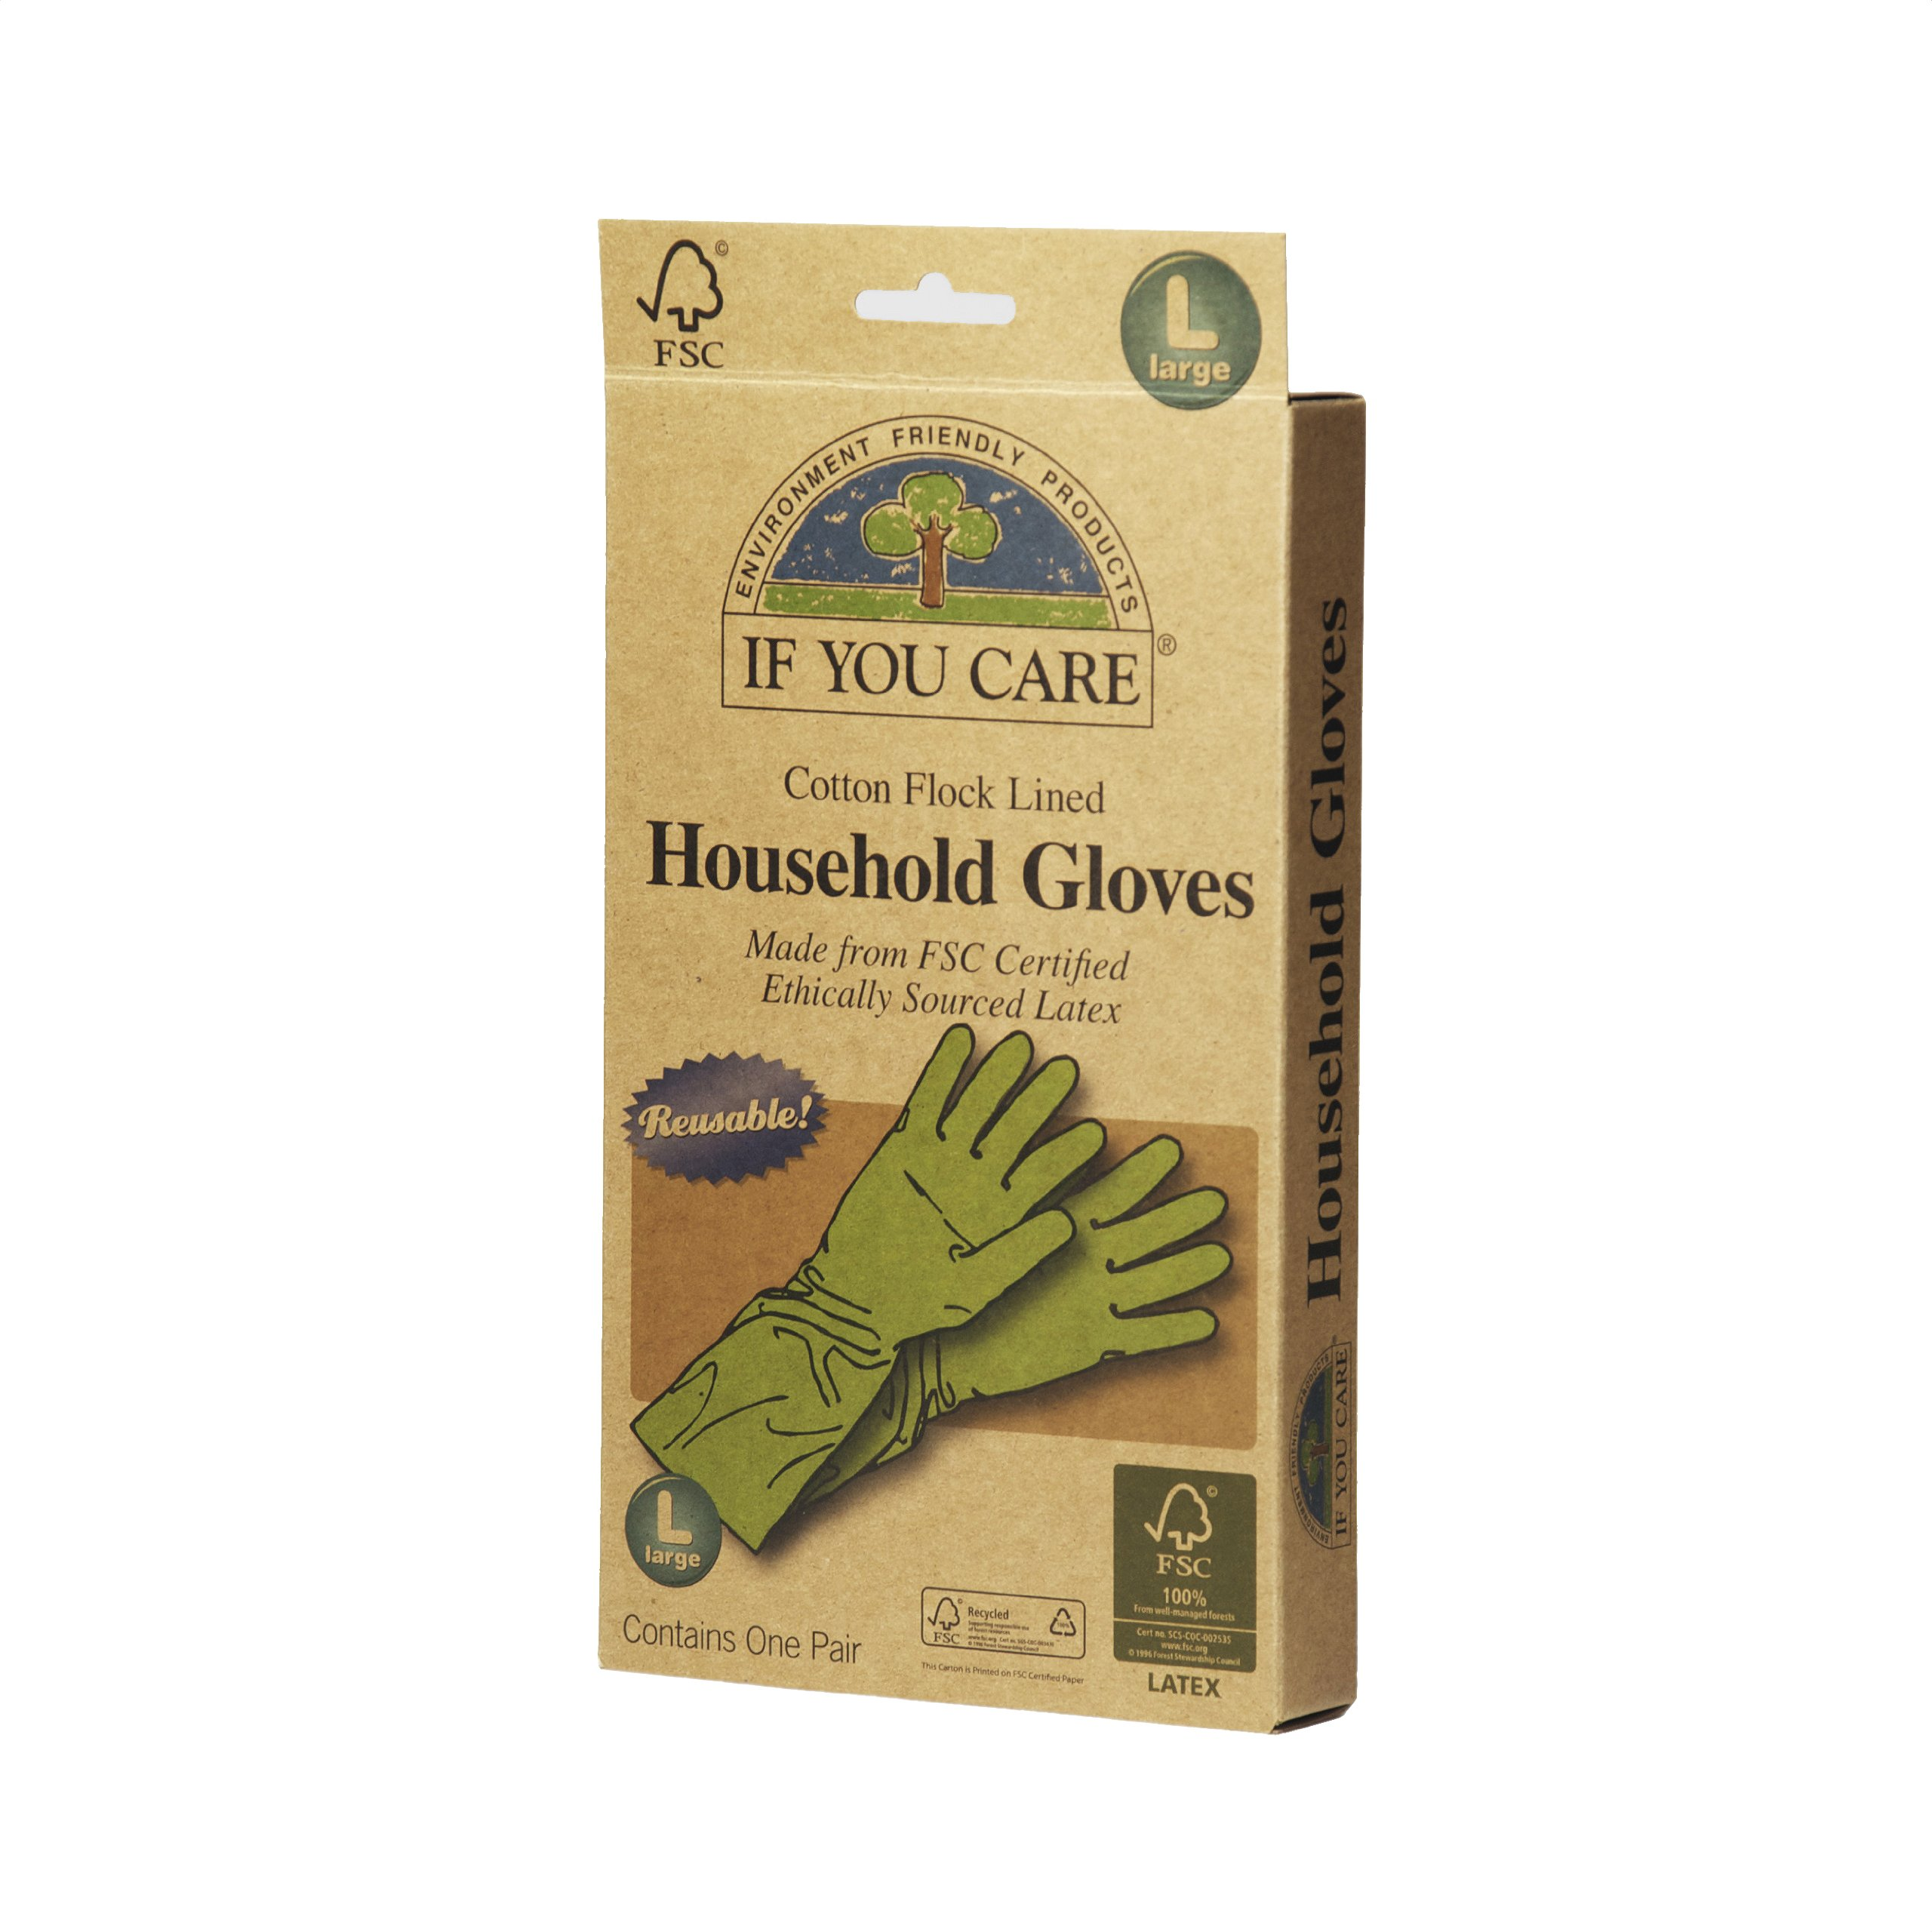 IF YOU CARE Large Cotton Flock Lined Household Gloves, 1 Pair (Pack of 6)